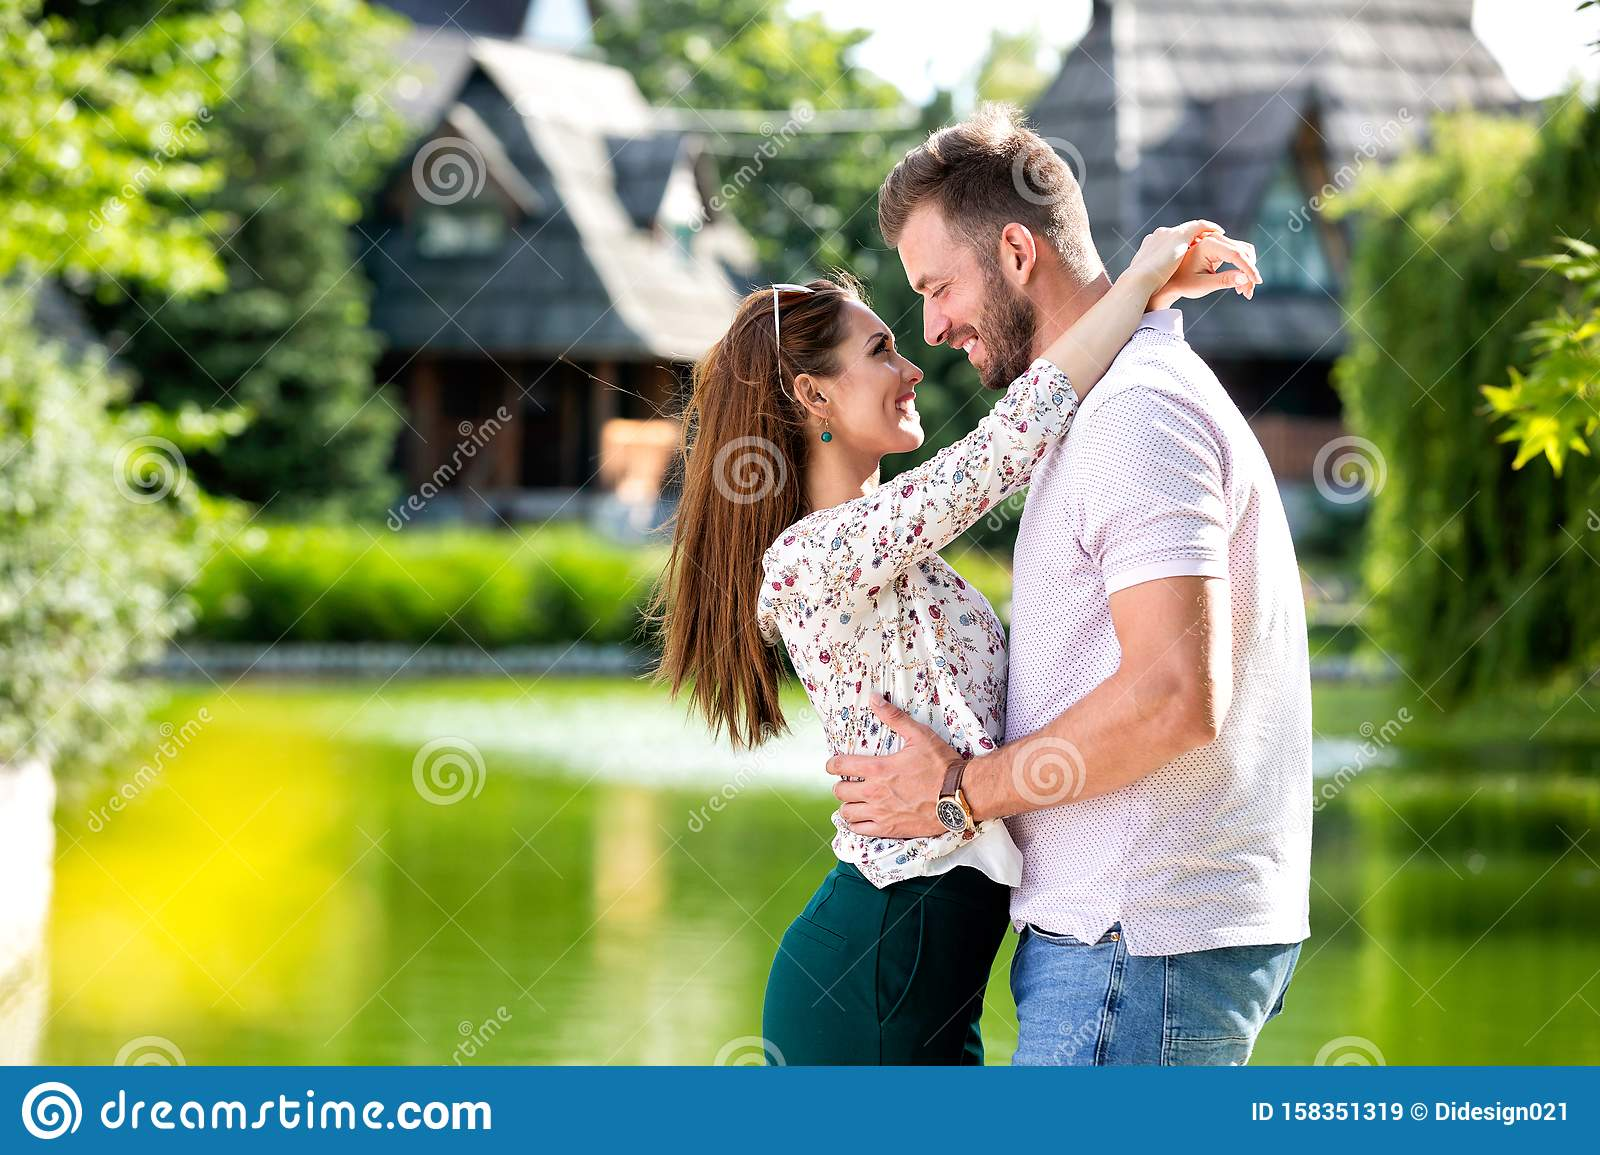 Hug Of True Love Between A Man And A Woman Stock Image